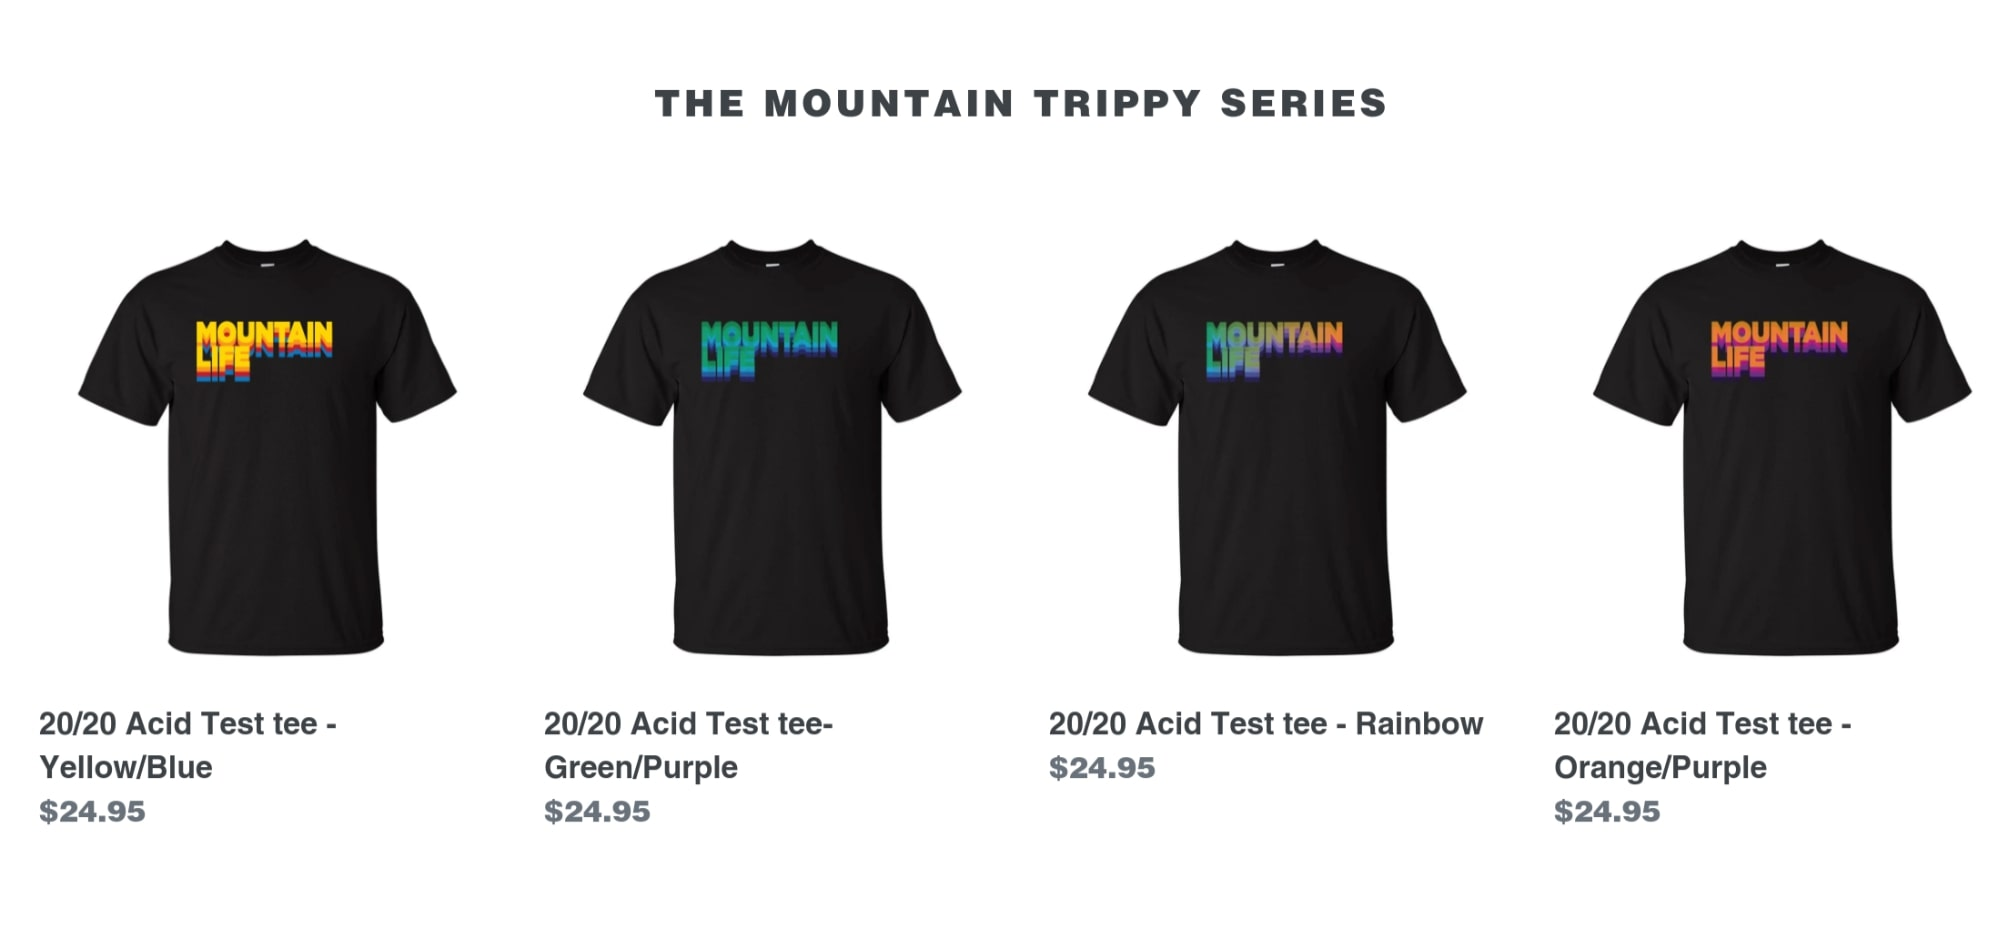 Cue-Flaming-Guitar-Solo-Mountain-Life-T-Shirts-Trippy-Series